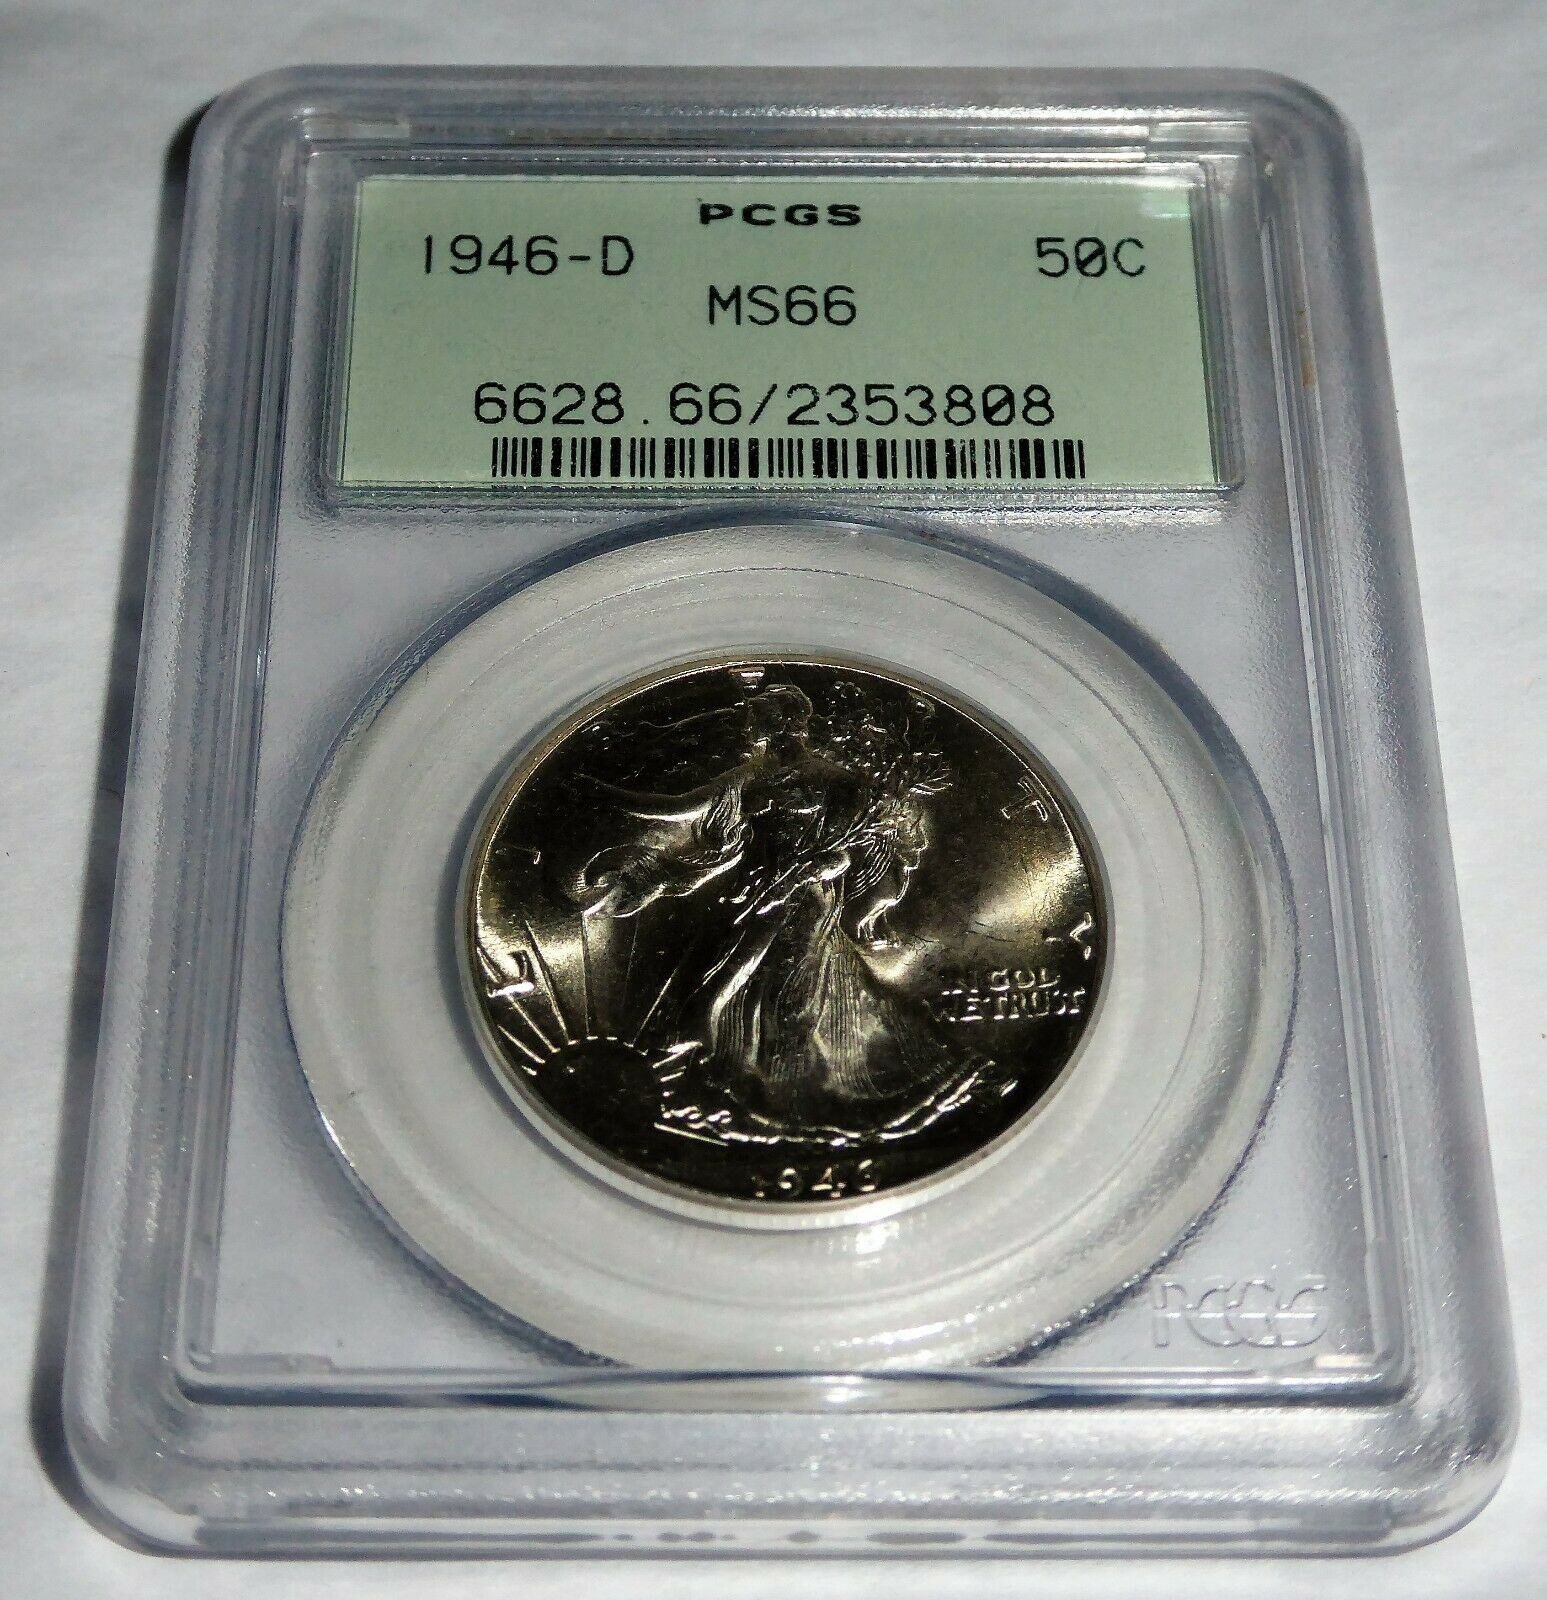 1946-D 50C PCGS MS66 50 Cent Fifty Cents Coin Walking Liberty Currency 💎